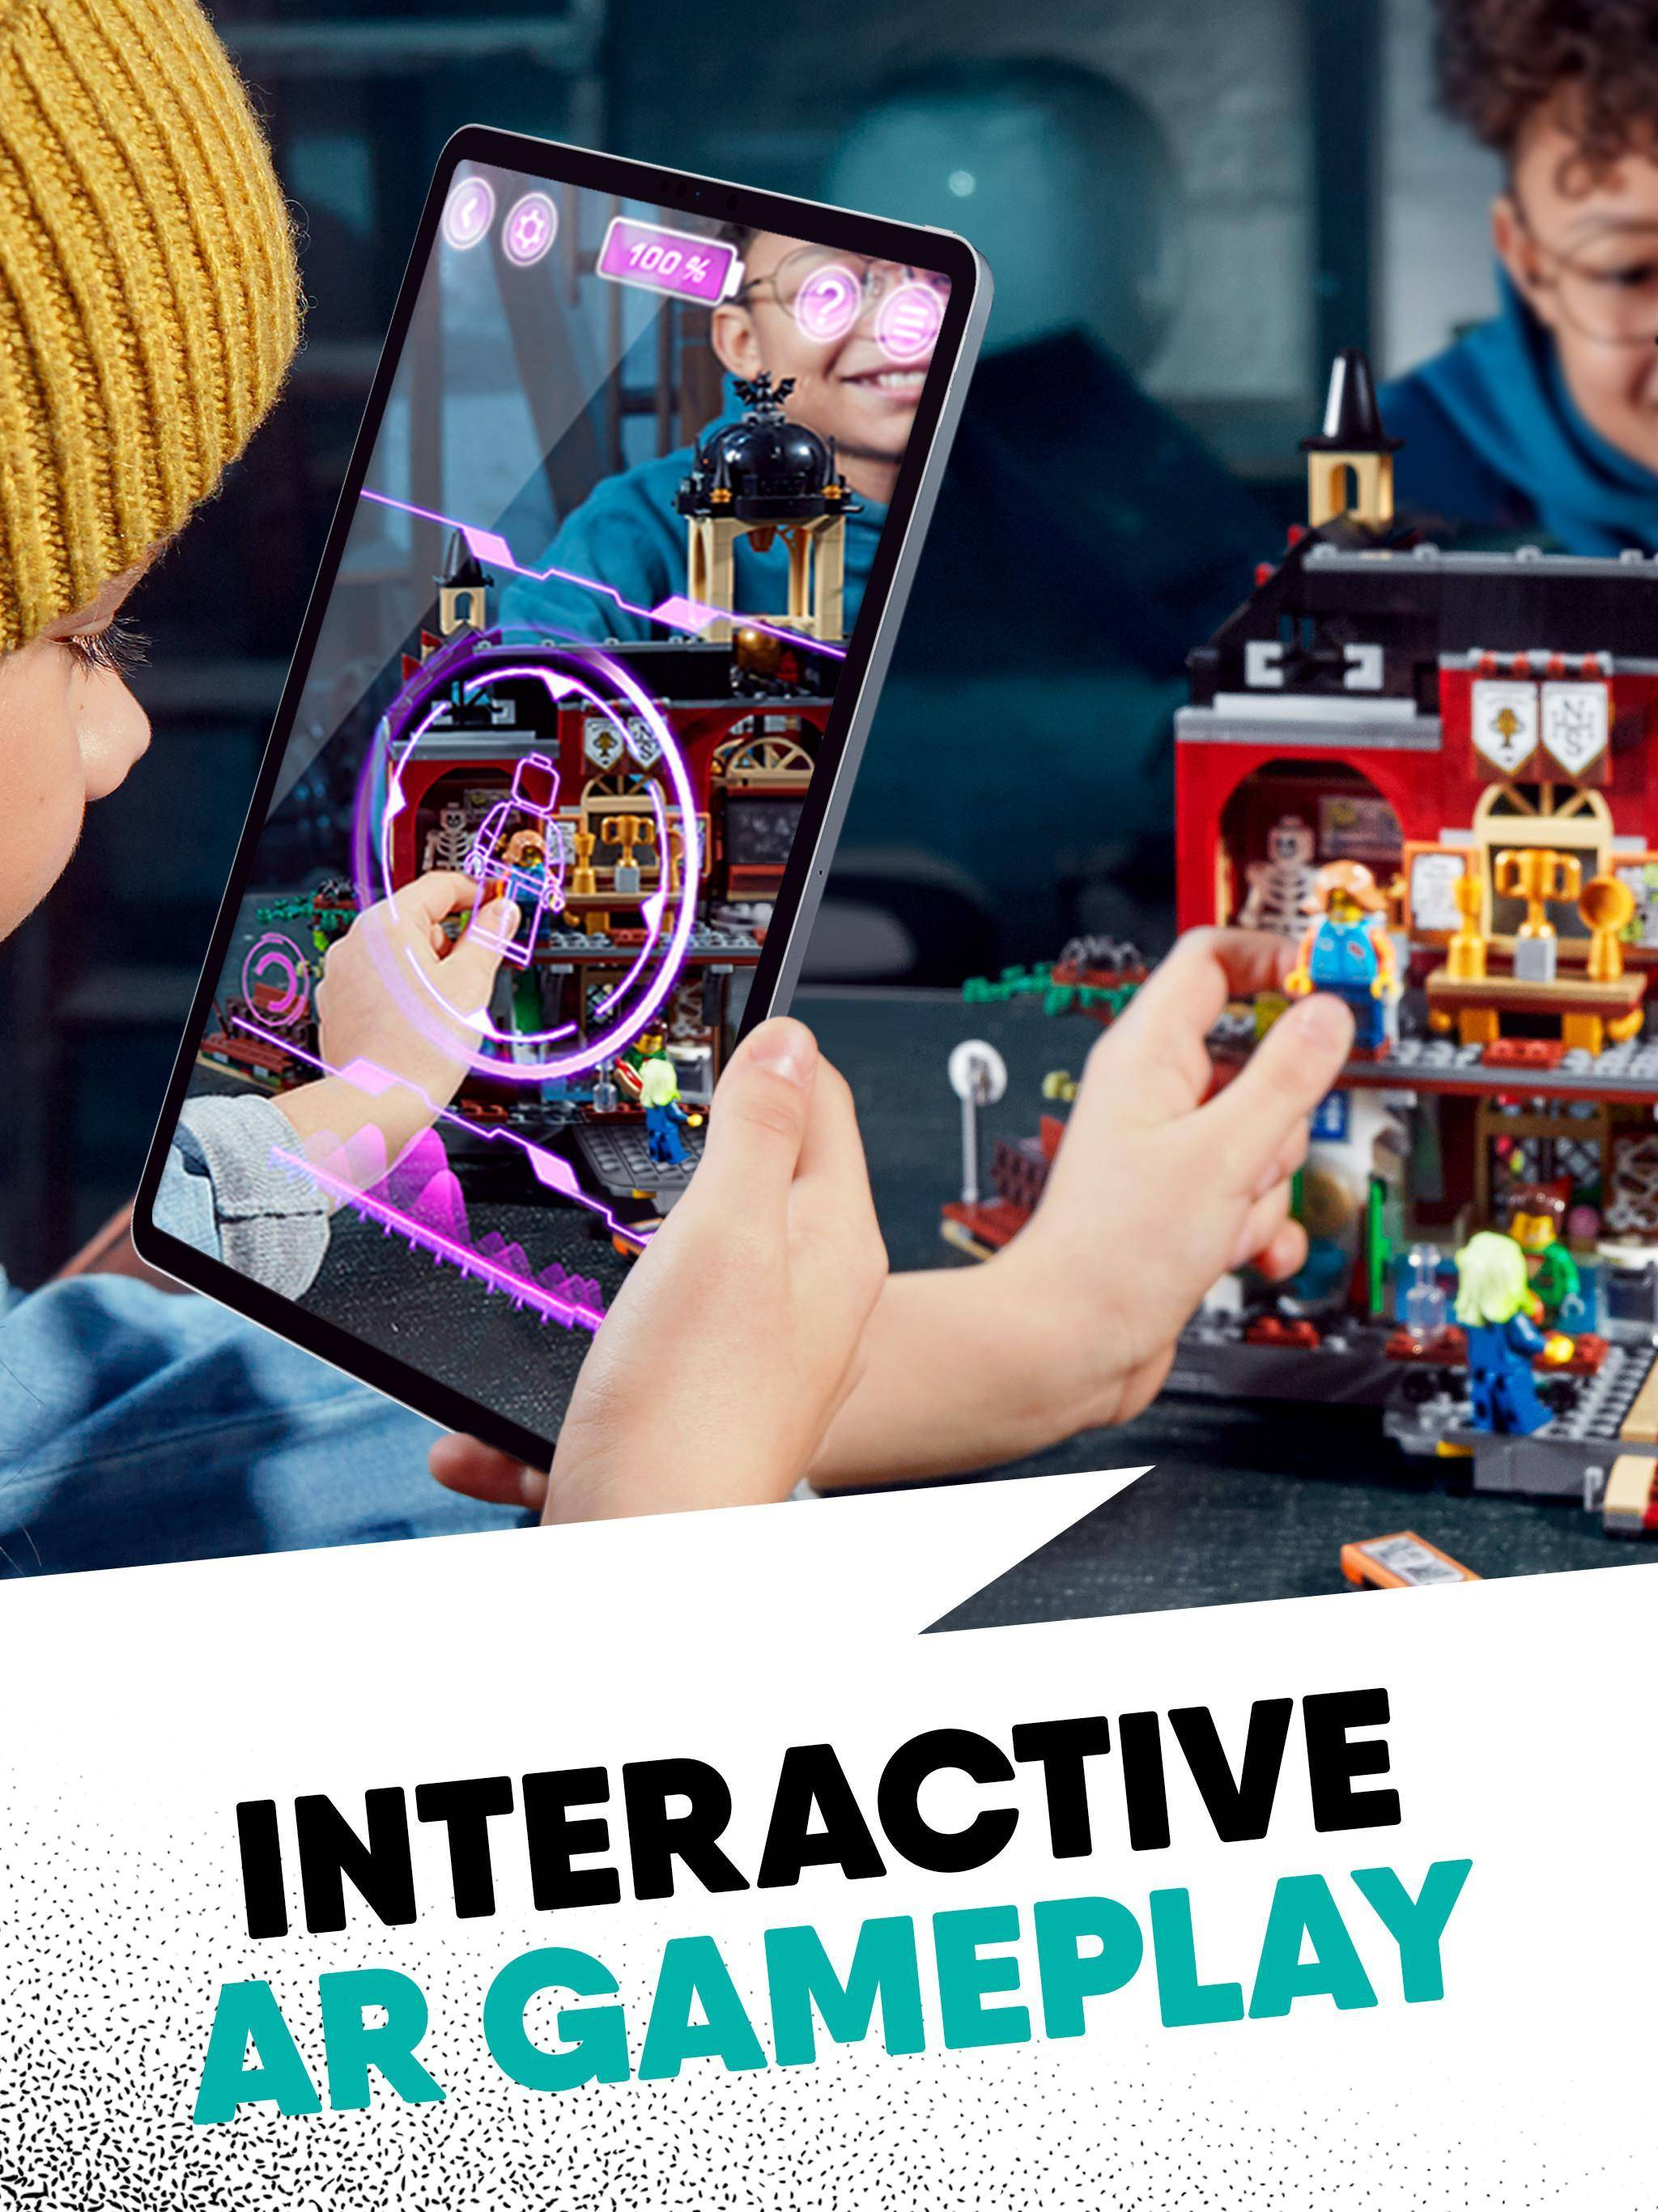 interactive ar gameplay